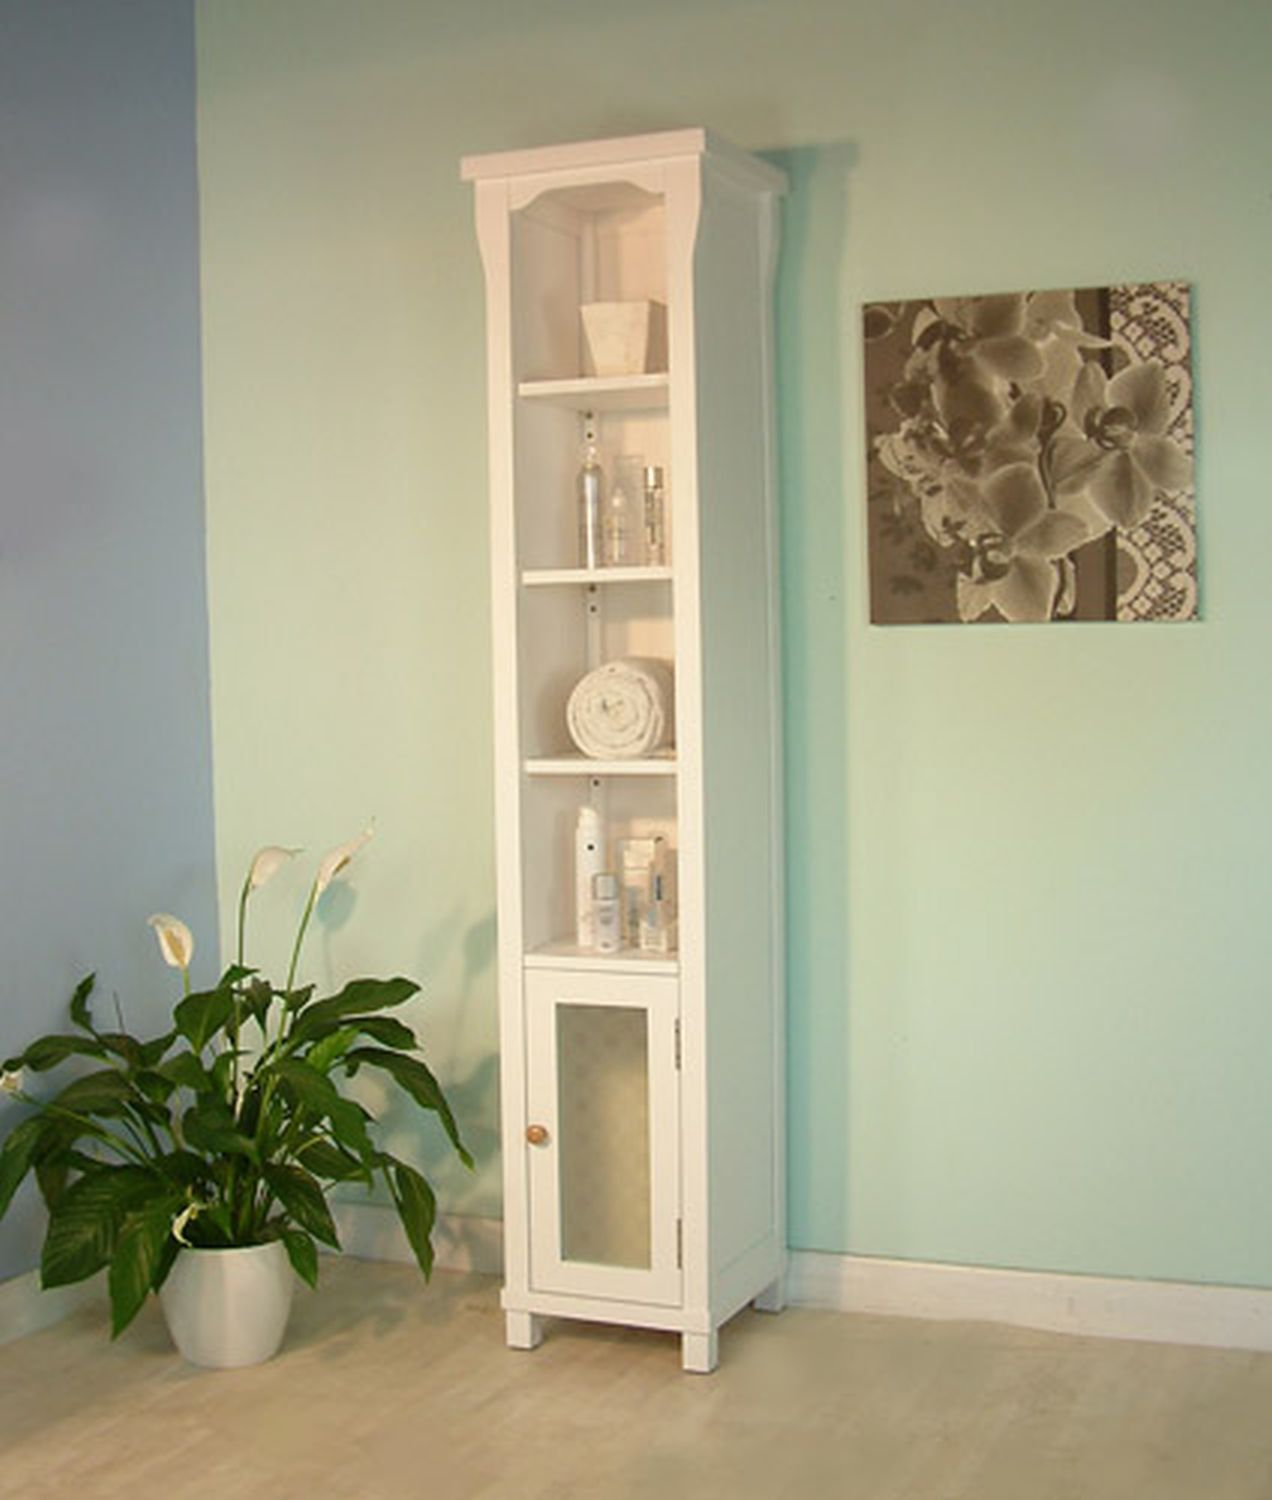 New England White Painted Furniture Tall Bathroom Cabinet